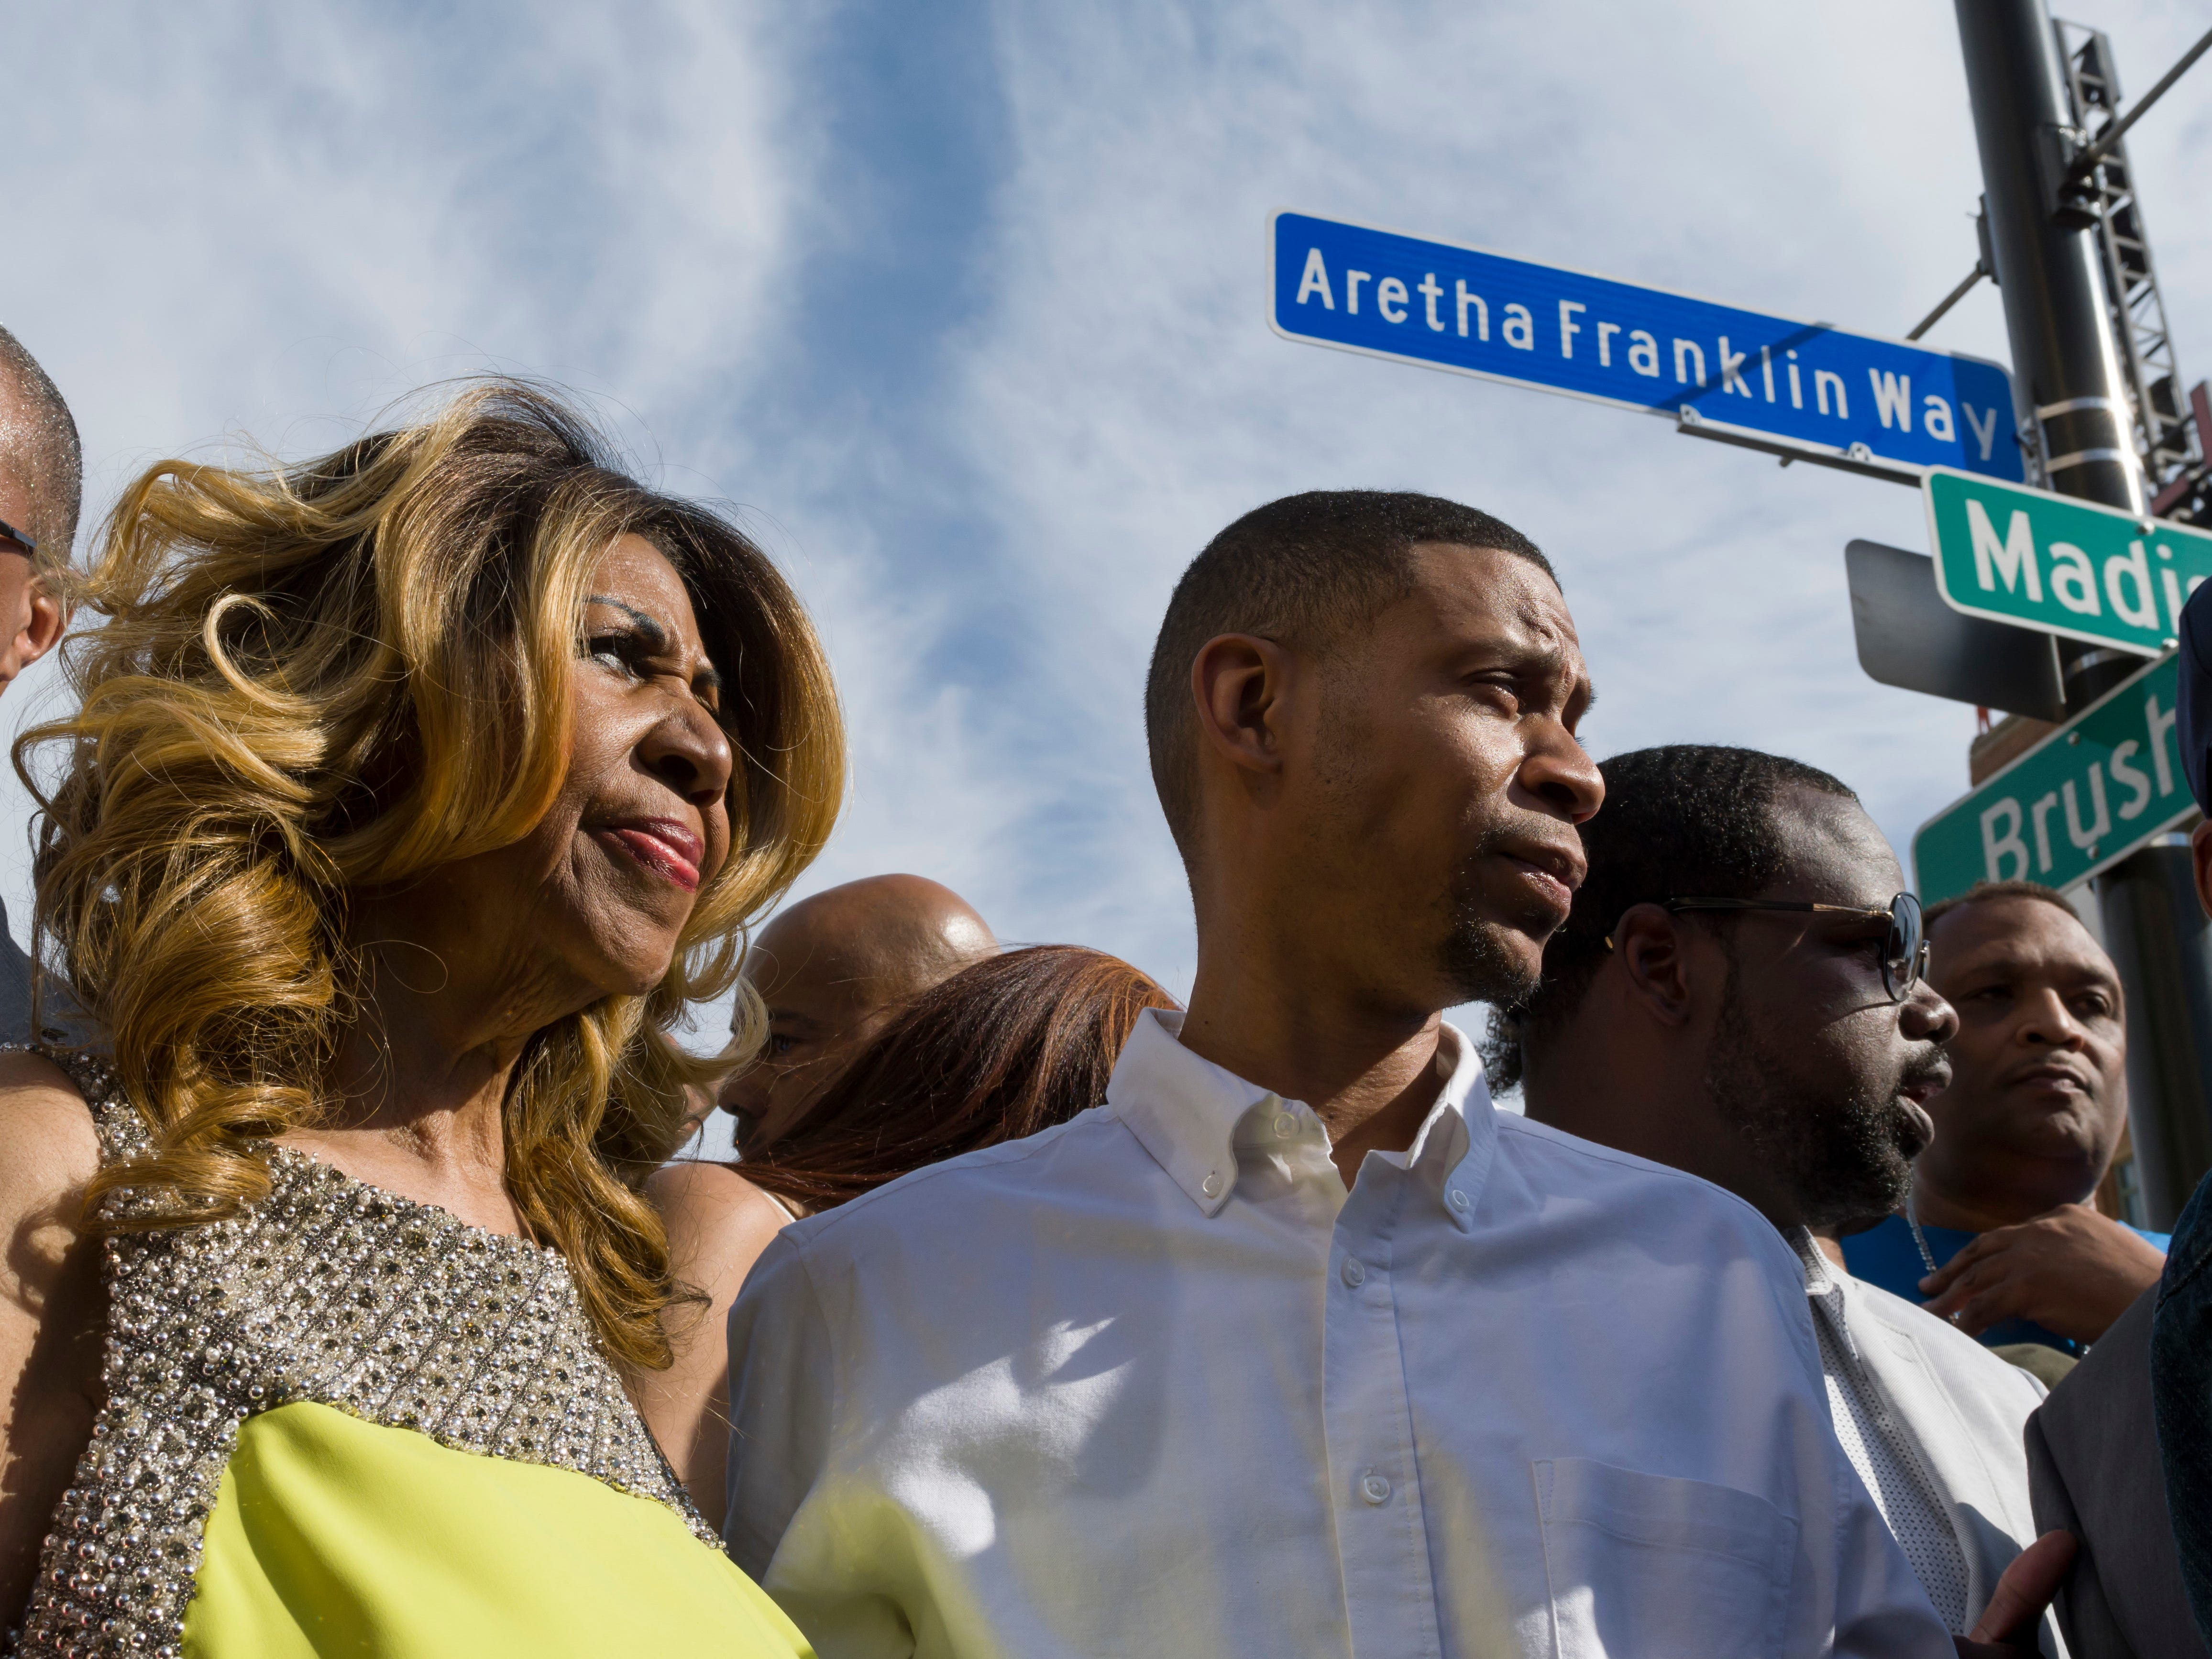 Aretha Franklin and her son Kecalf Cunningham stand under the newly unveiled street sign in front of the Music Hall in Detroit, June 8, 2017. (David Guralnick/Detroit News via AP) ORG XMIT: MIDTN102